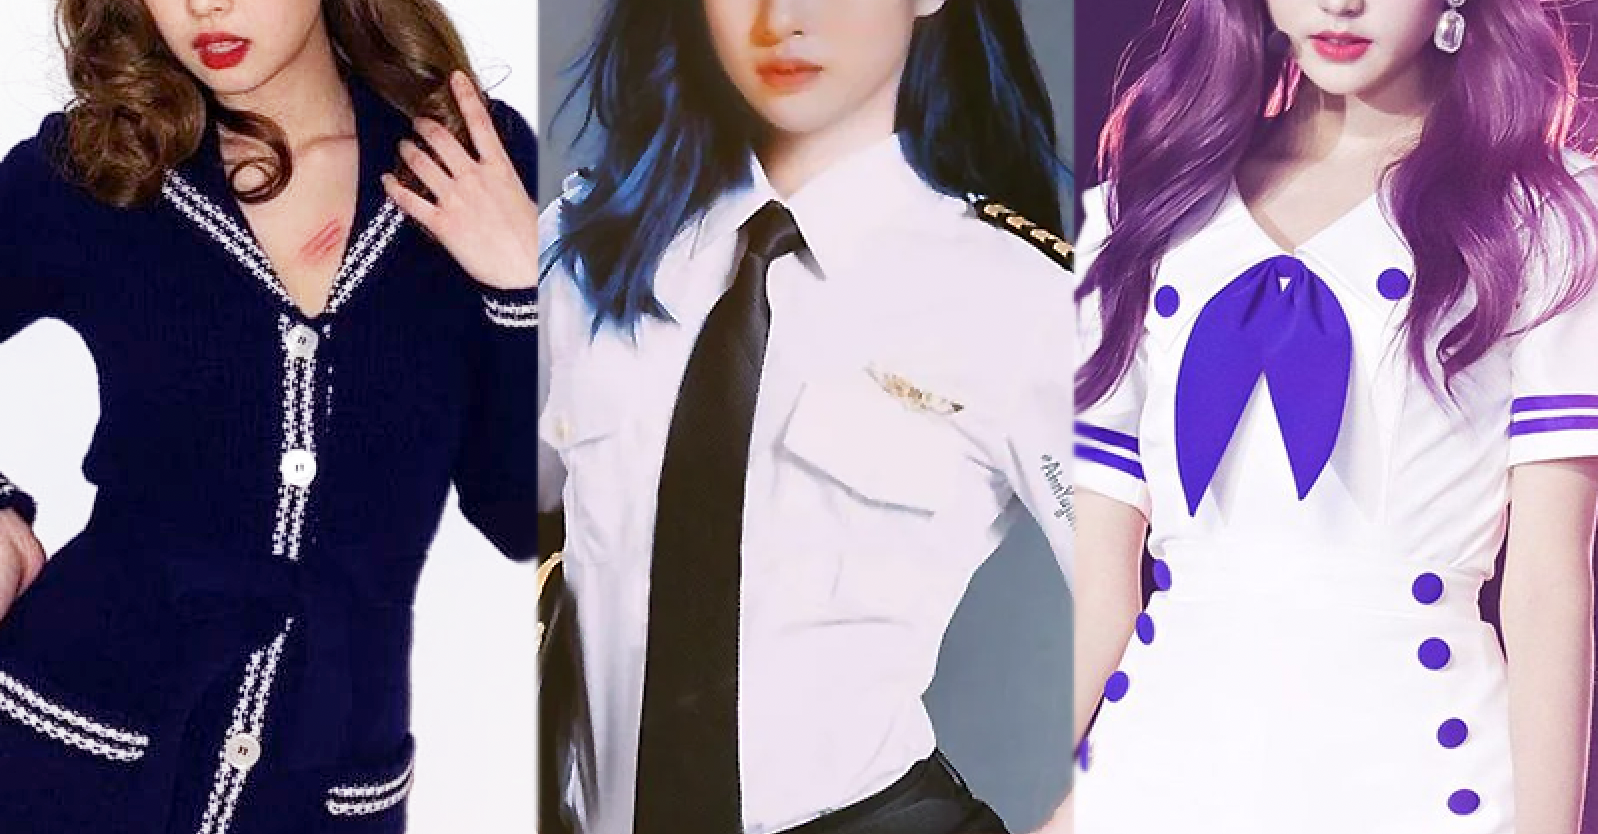 Dispatch Selects the 7 Female Idols Who Look The Best In Sailor Outfit